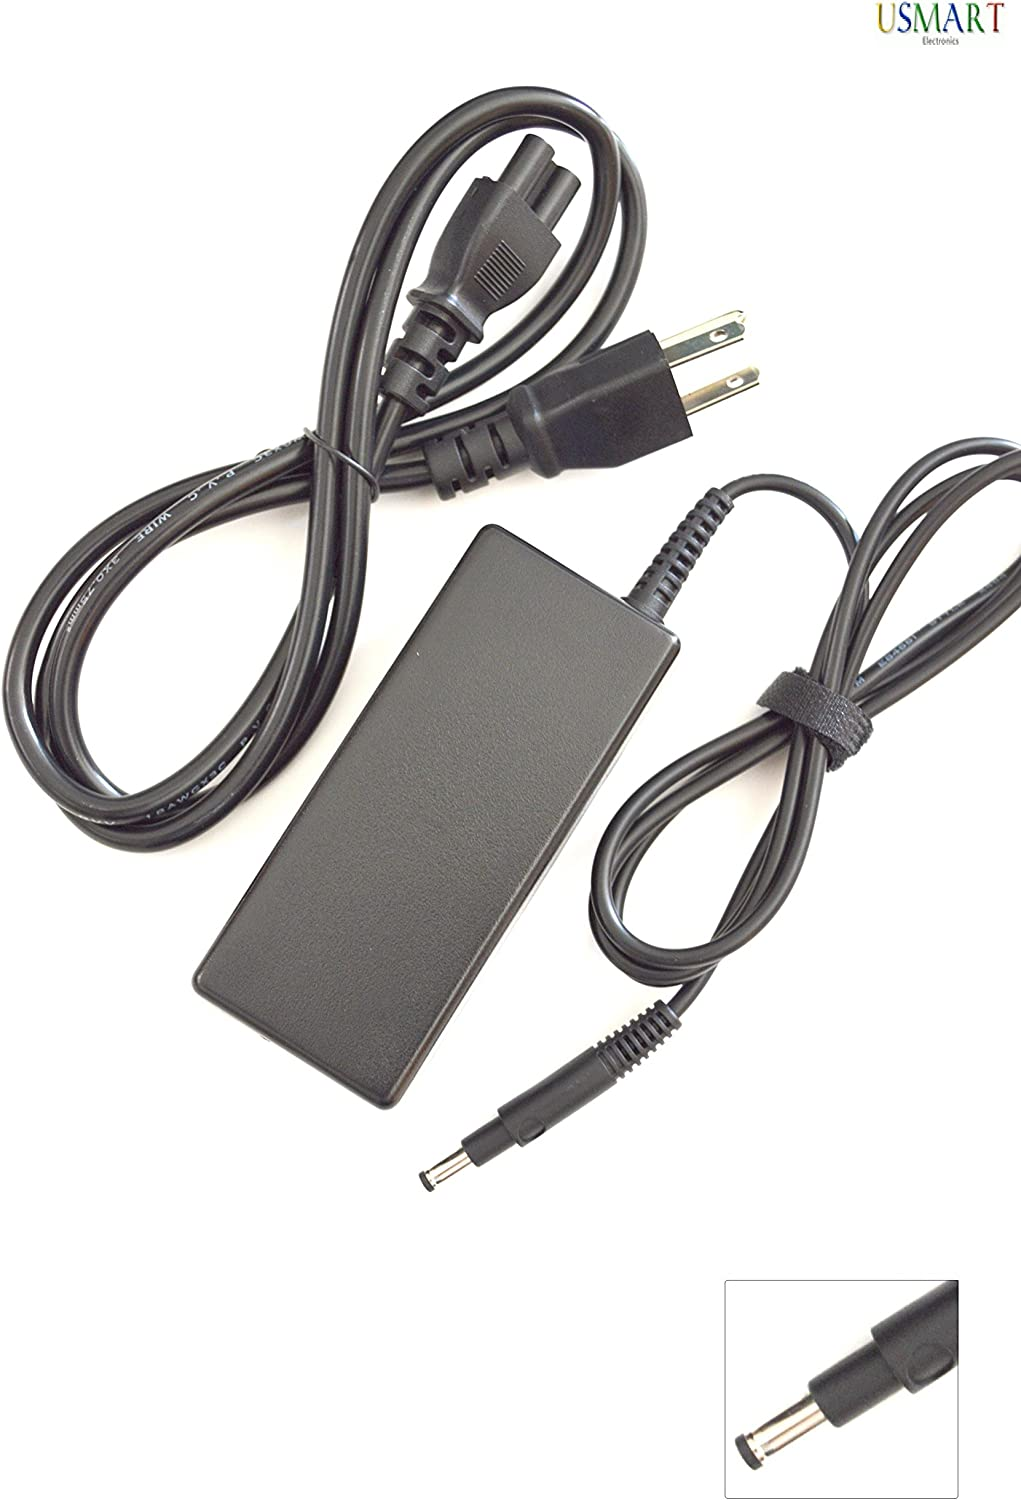 Usmart AC Adapter Laptop Charger for HP Envy Sleekbook 14-3010nr Laptop New Power Supply 3 Years Warranty